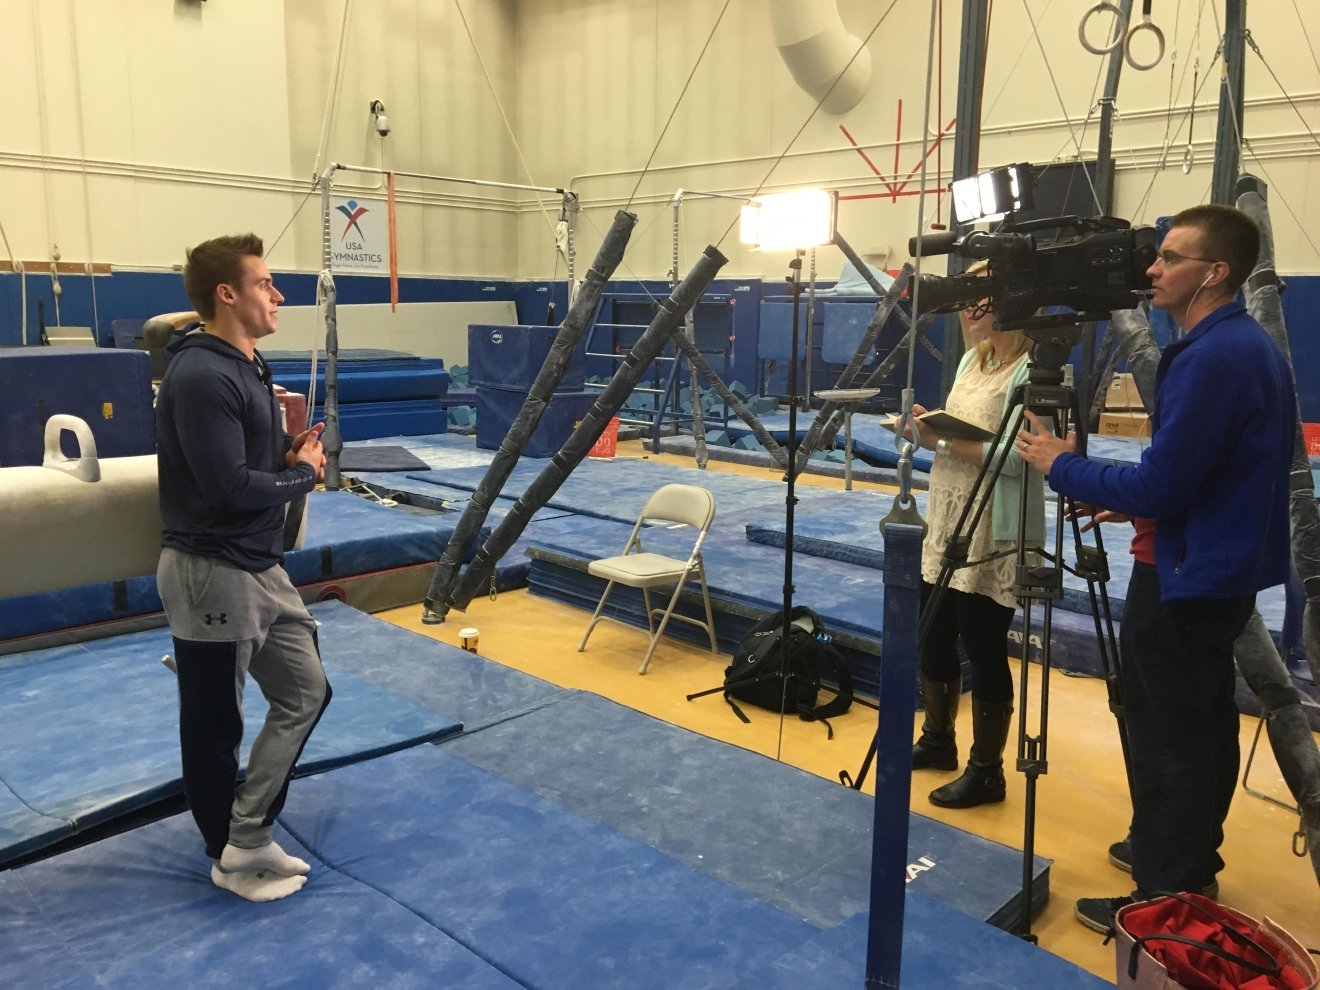 NBC 25 Photographer, Michael Horne, and Anchor, Sadie Hughes, at the Olympic Training Center in Colorado Springs, Colorado, interviewing Team USA gymnast, Sam Mikulak. Photo Credit: Anna Avery.